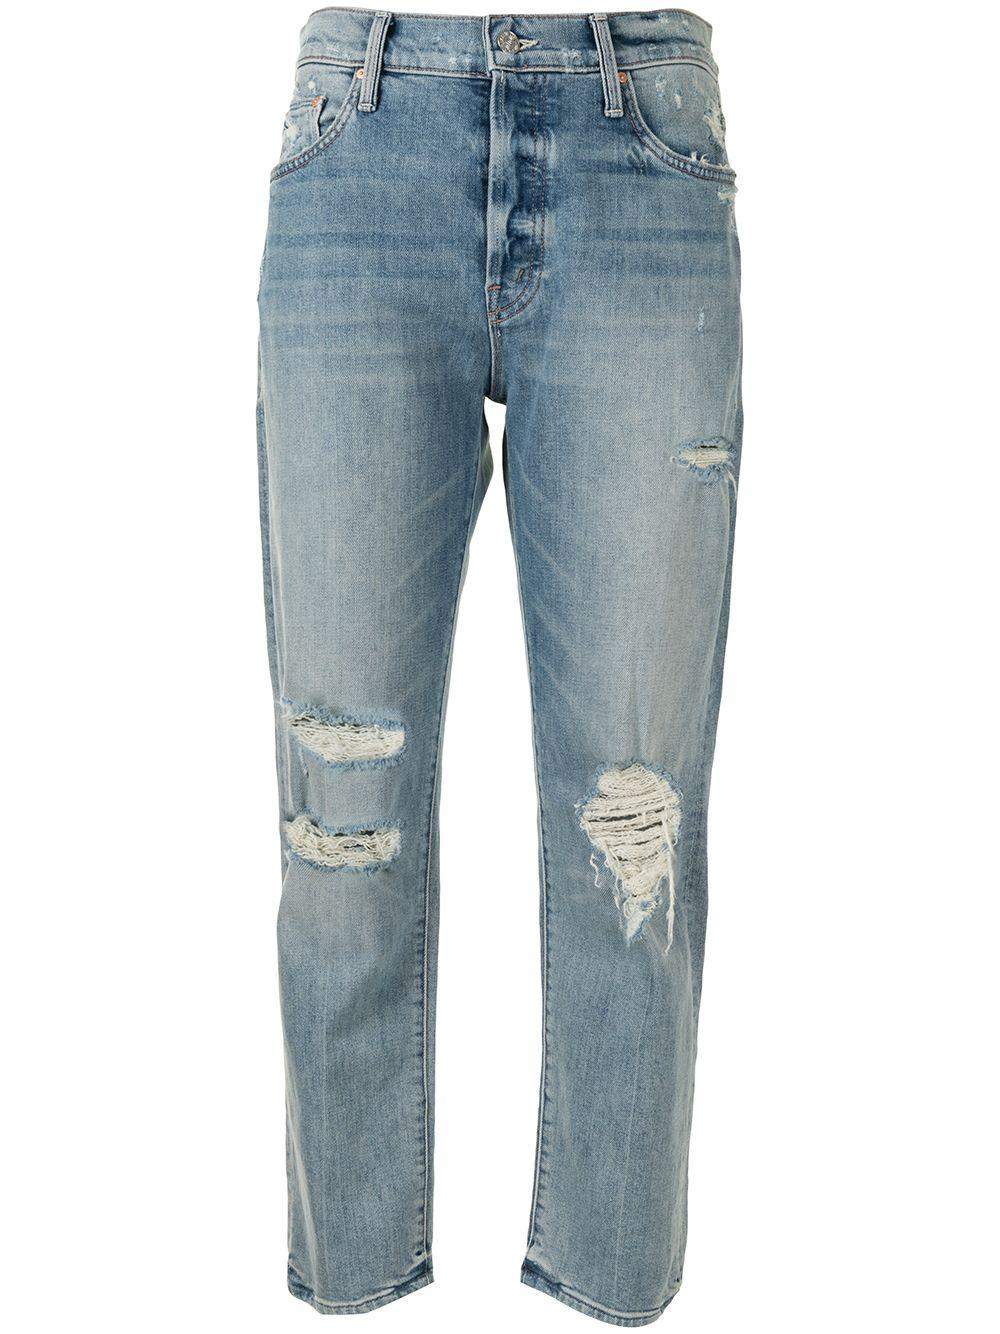 The Scrapper Ankle Jeans Item # 10026-259